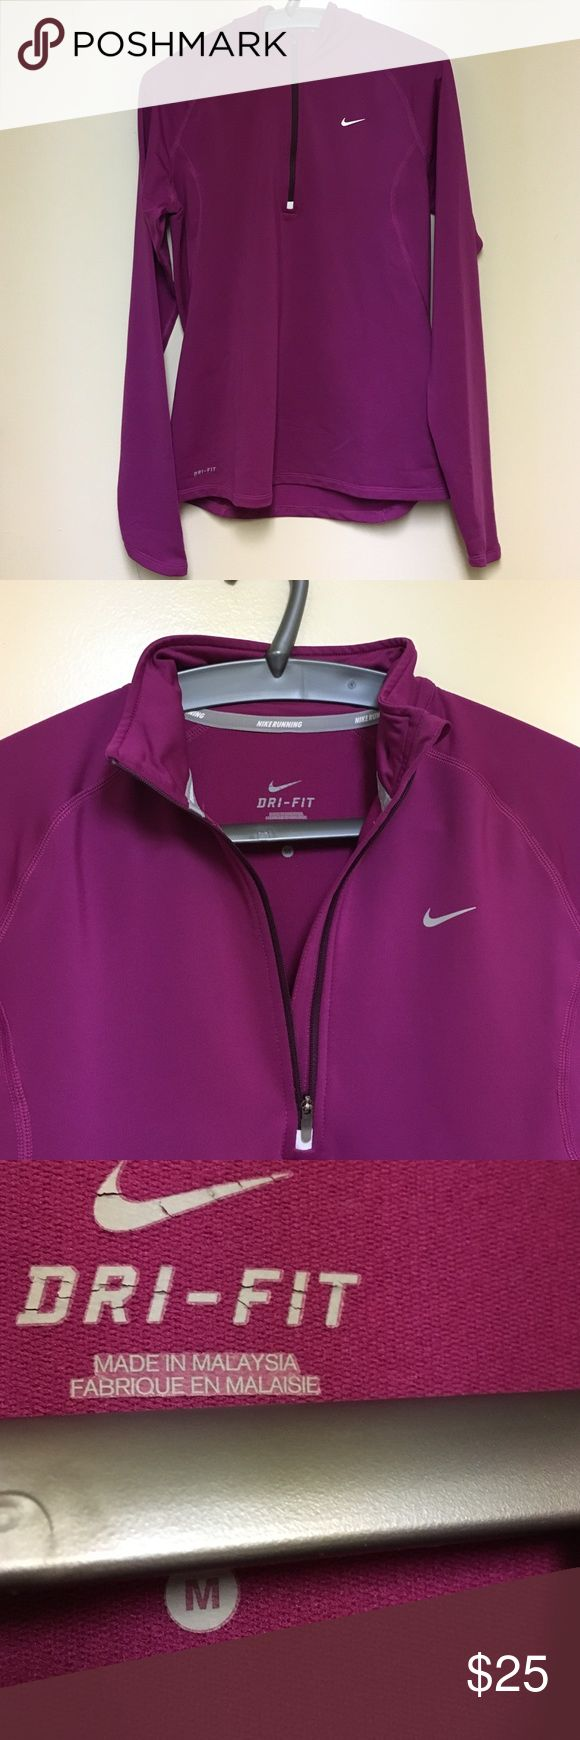 Nike Running Dri Fit long sleeve 1/4 zip top Get in shape for 2017 & look great doing it in this long sleeved Nike top. Moisture wicks away. Super comfy. Sleeves come down mid hand. Hits mid hip. Color is more mulberry/raspberry. Nike Tops Tees - Long Sleeve